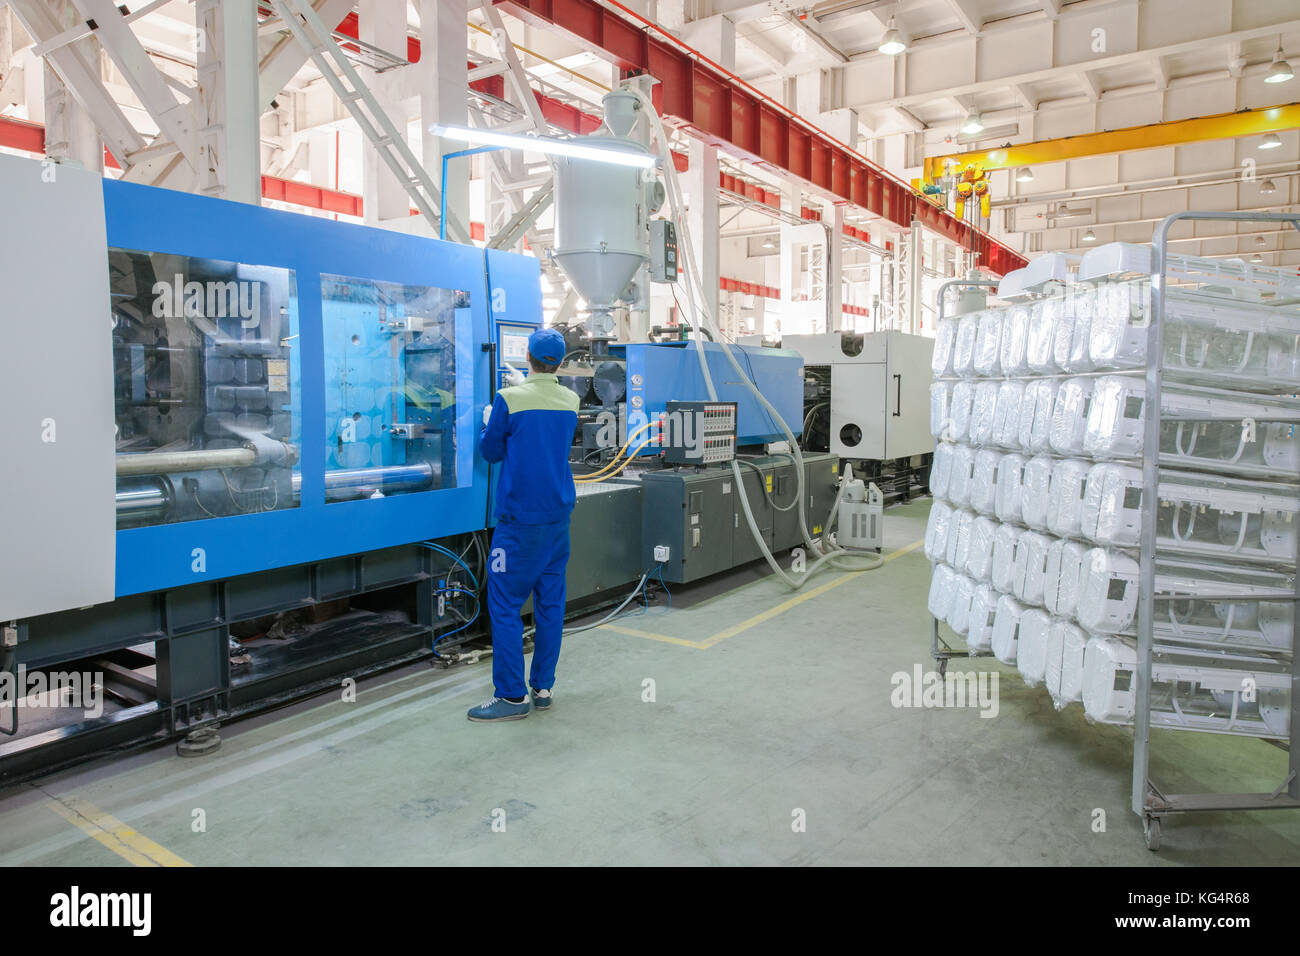 Industrial injection molding press machine for the manufacture of conditioner parts using polymers in the management - Stock Image